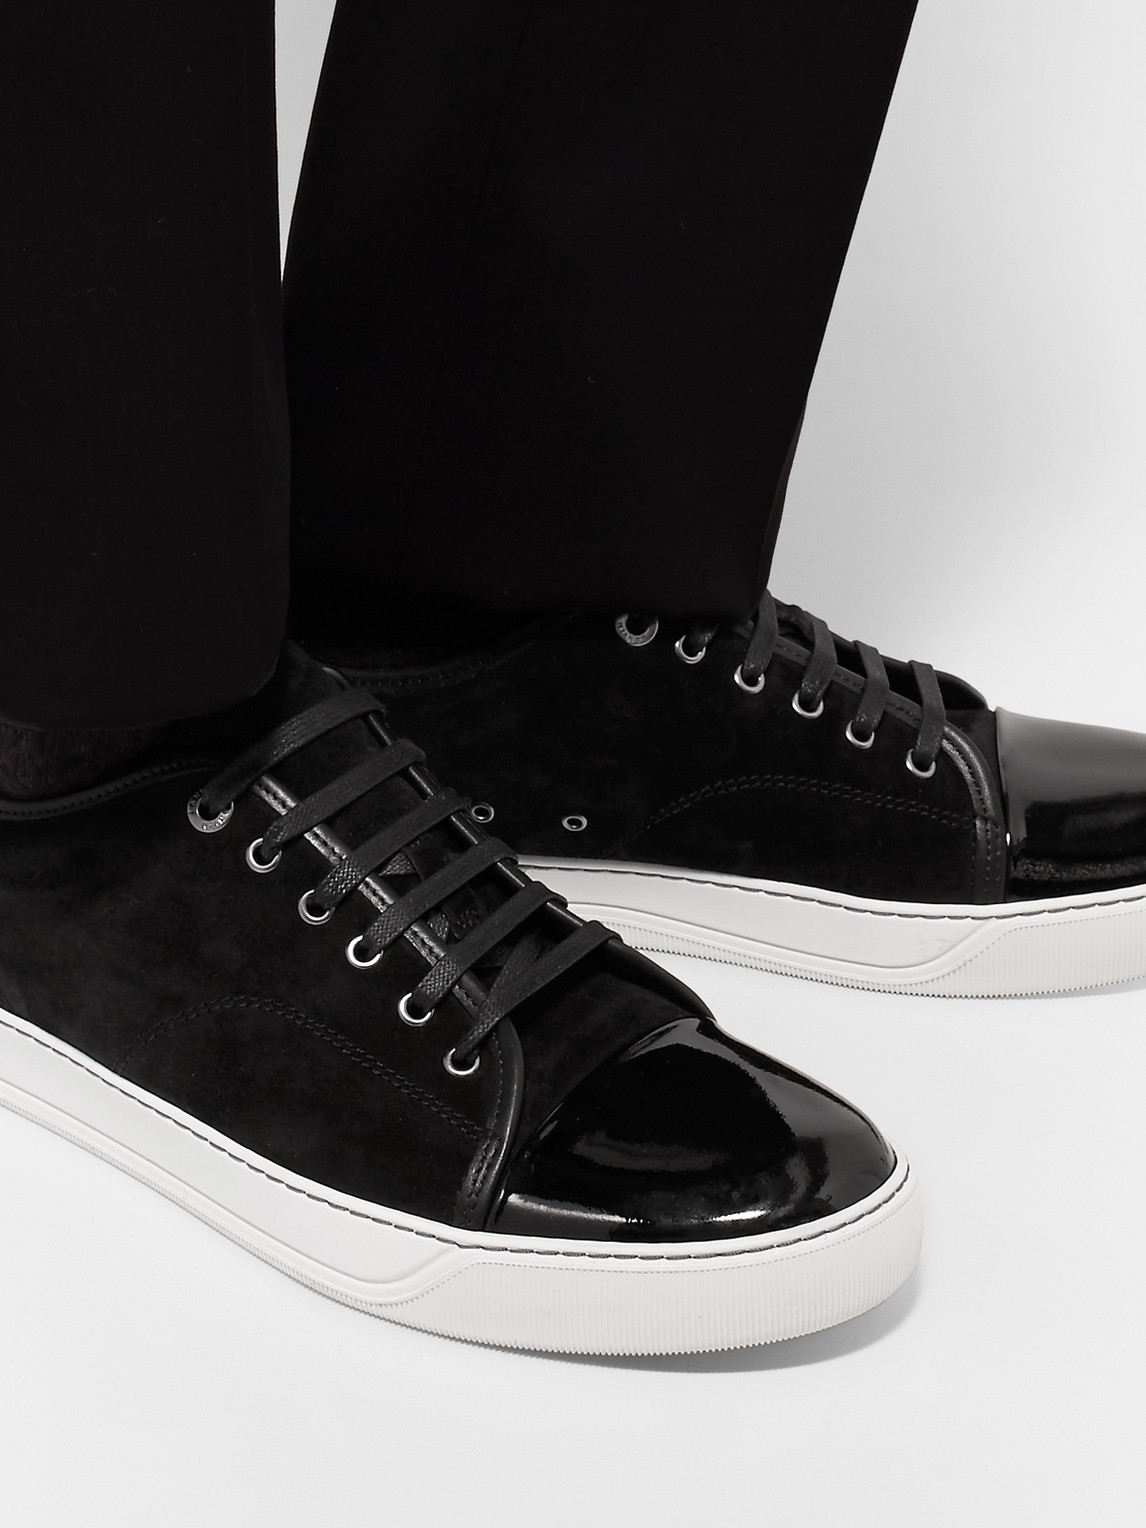 Lanvin Sneakers CAP-TOE SUEDE AND PATENT-LEATHER SNEAKERS